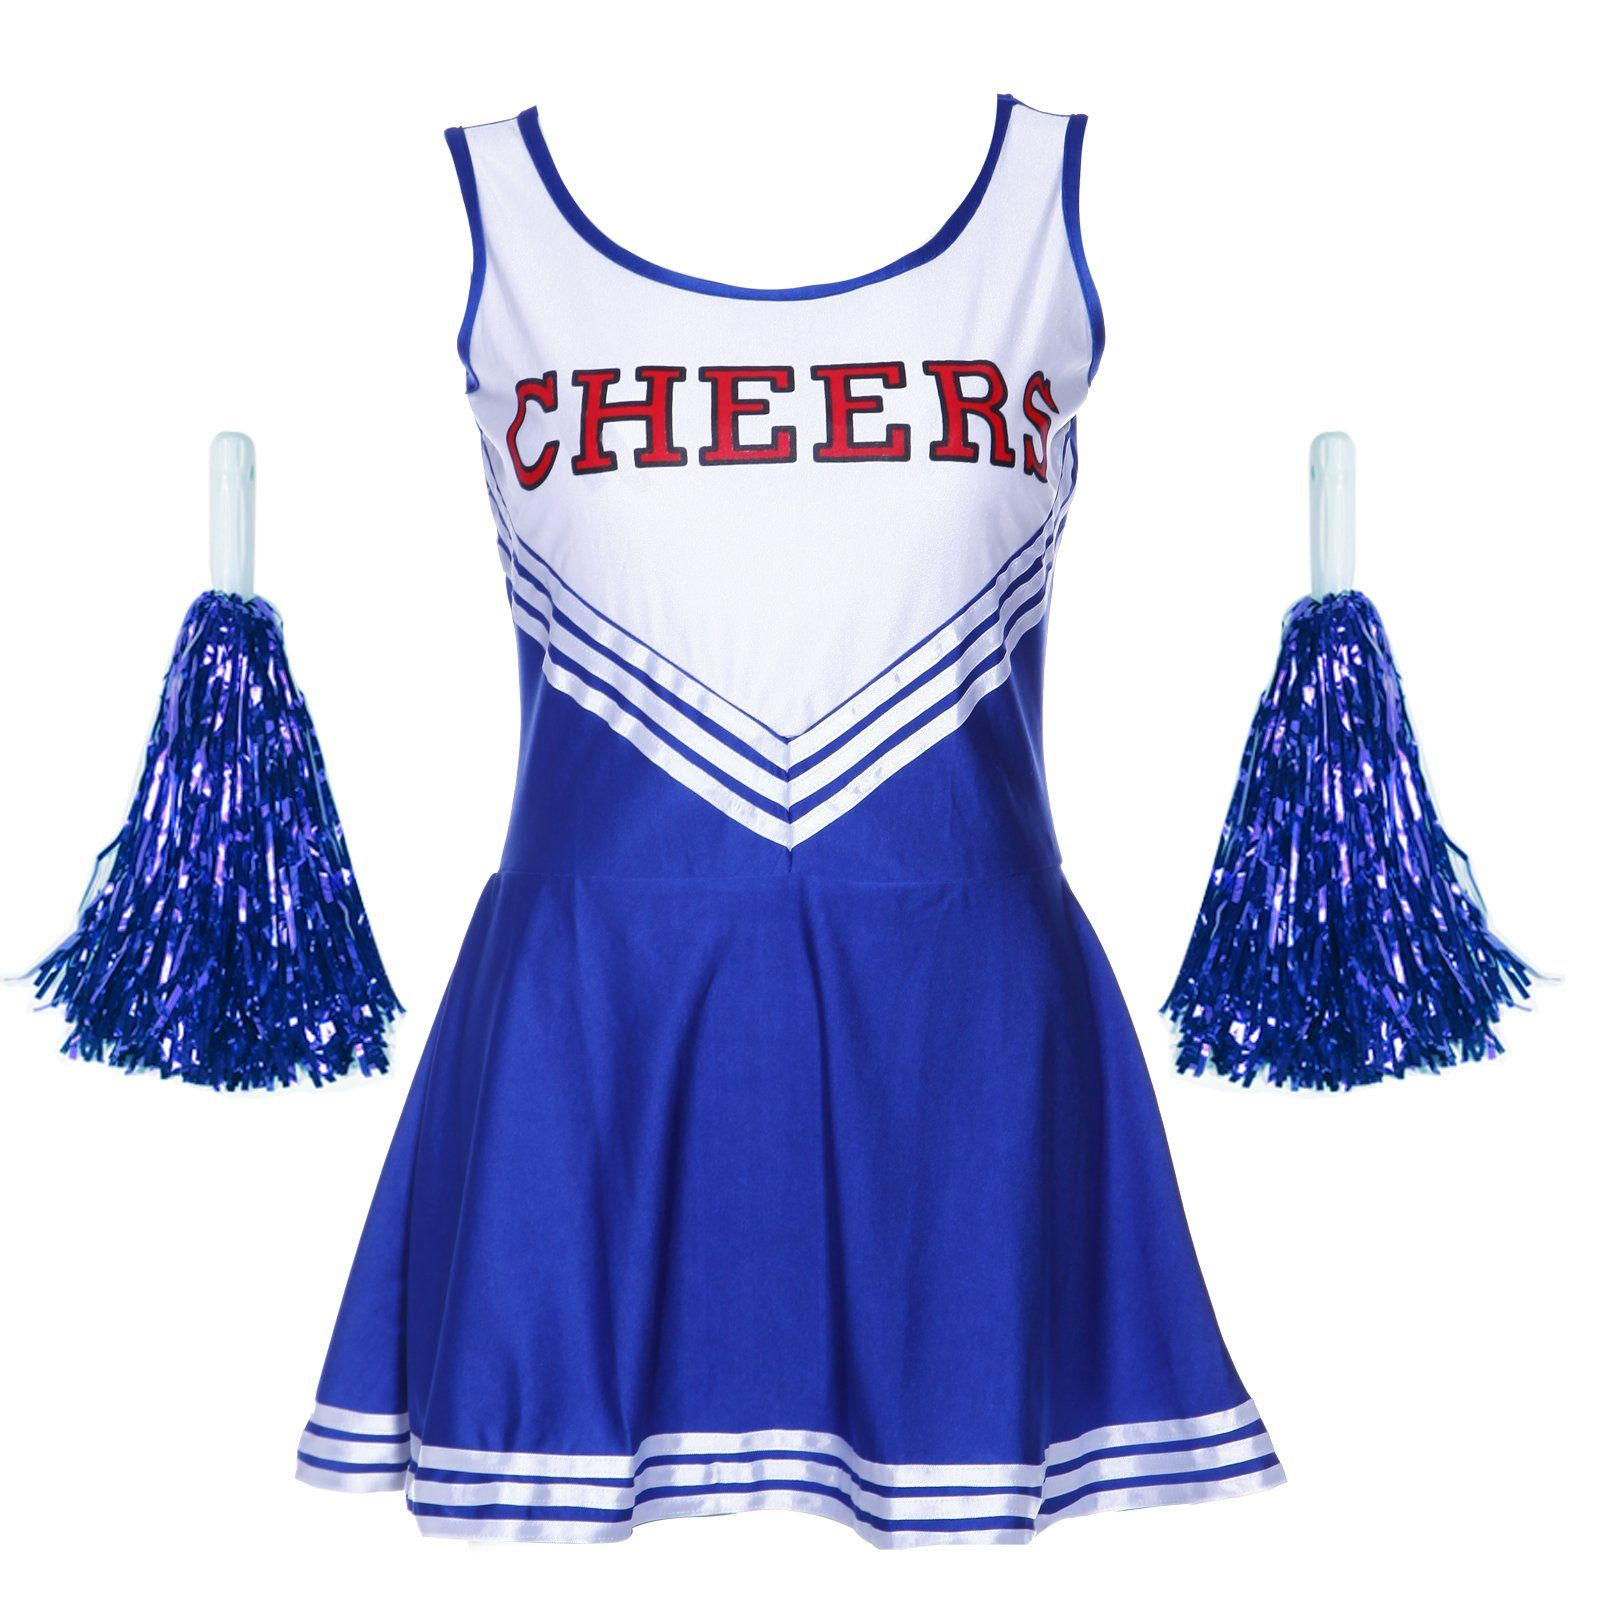 db17fc010e4 Hot Sale Tank Dress Blue Pom pom girl cheerleaders dress fancy dress ...